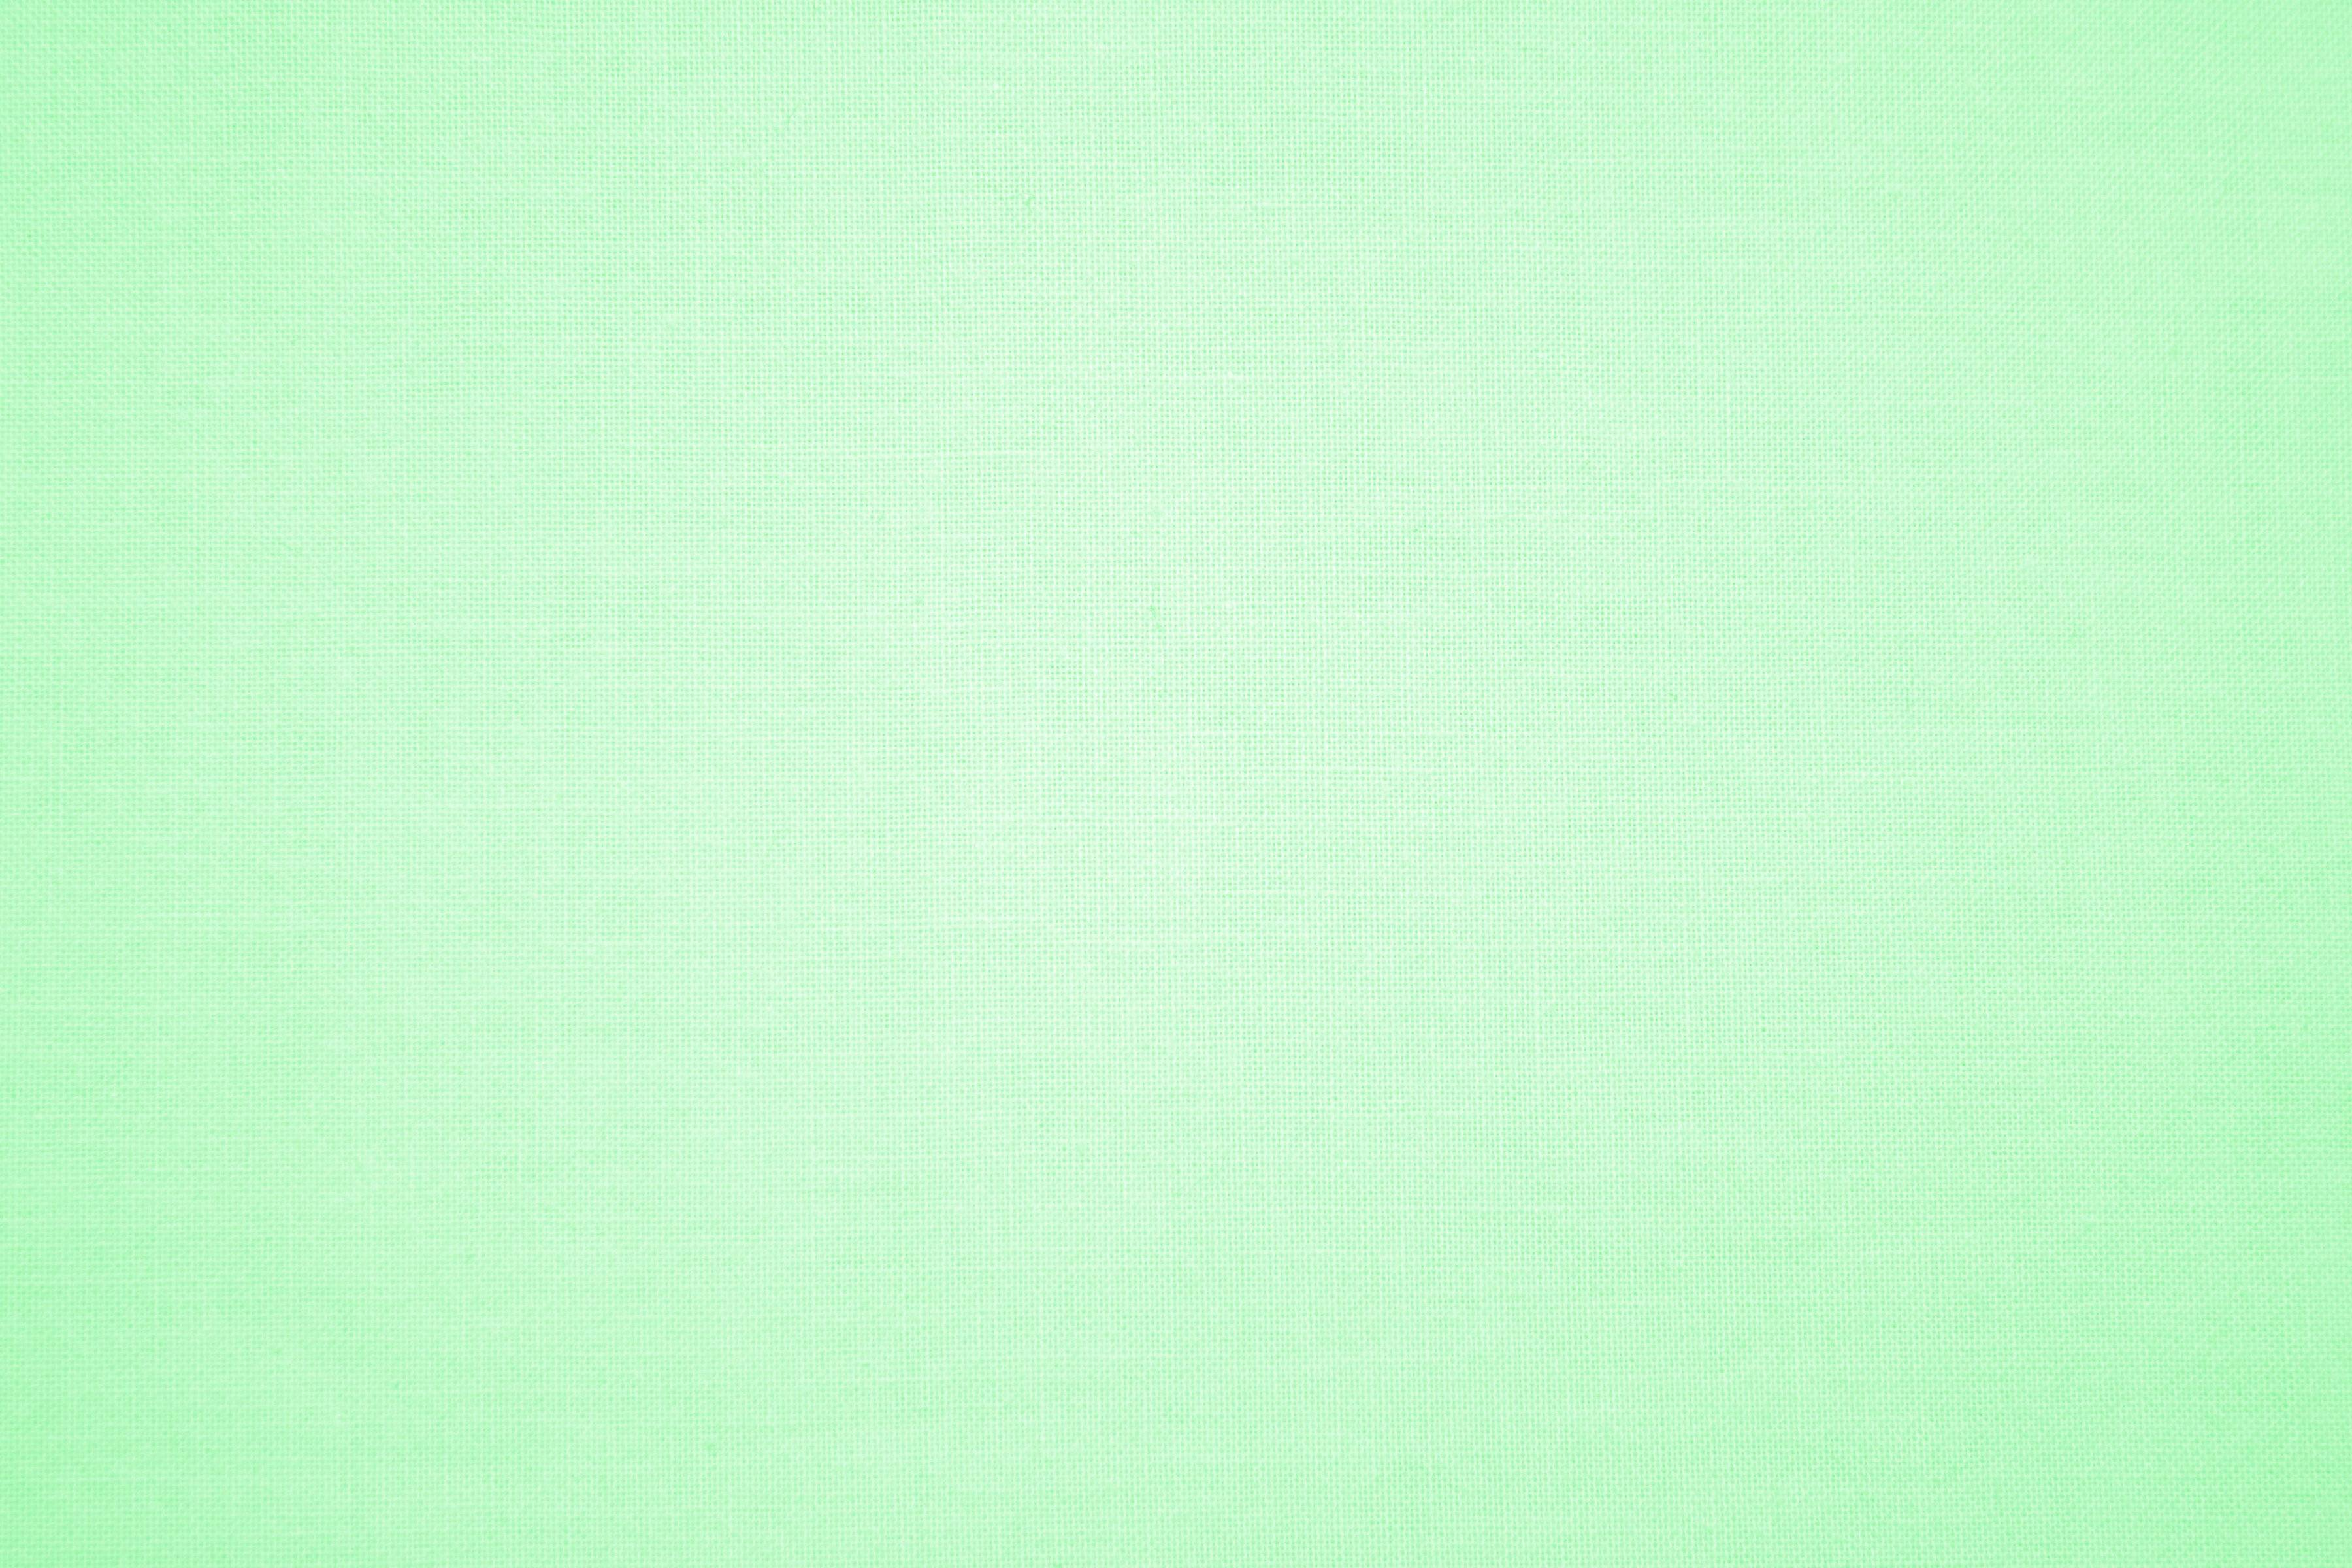 Pastel Green Canvas Fabric Texture Picture Free Photograph